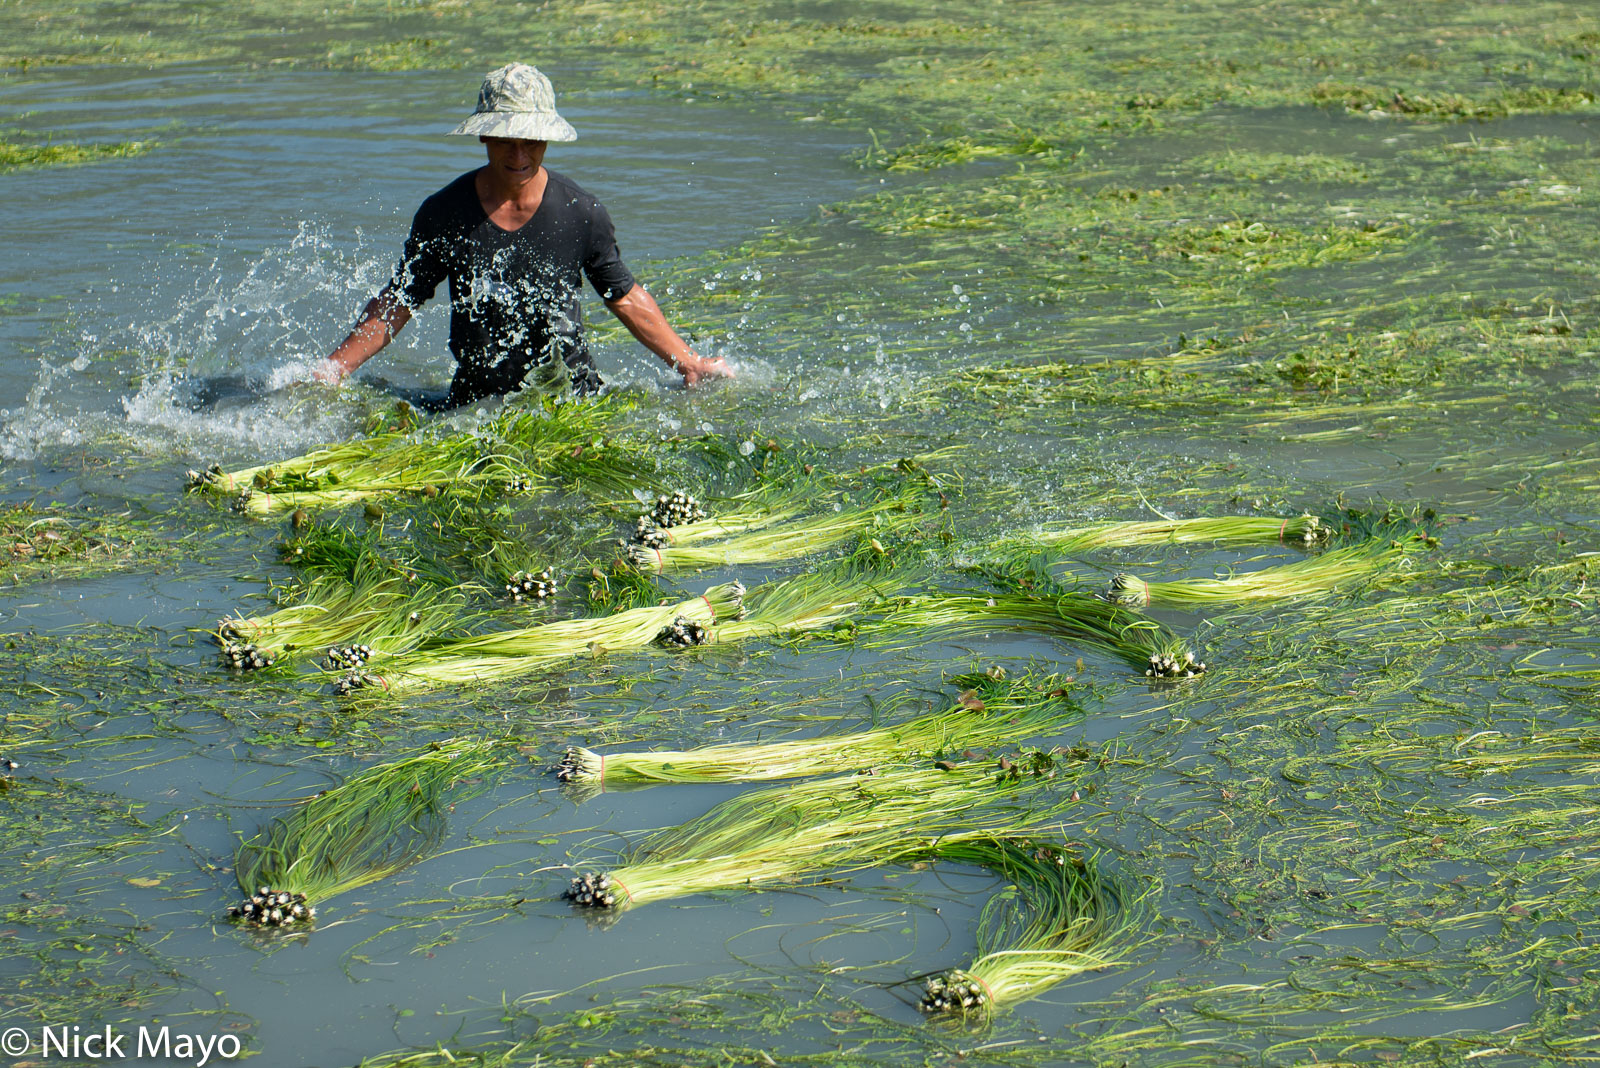 A worker with water lily stems harvested from a pond in Meinong district.